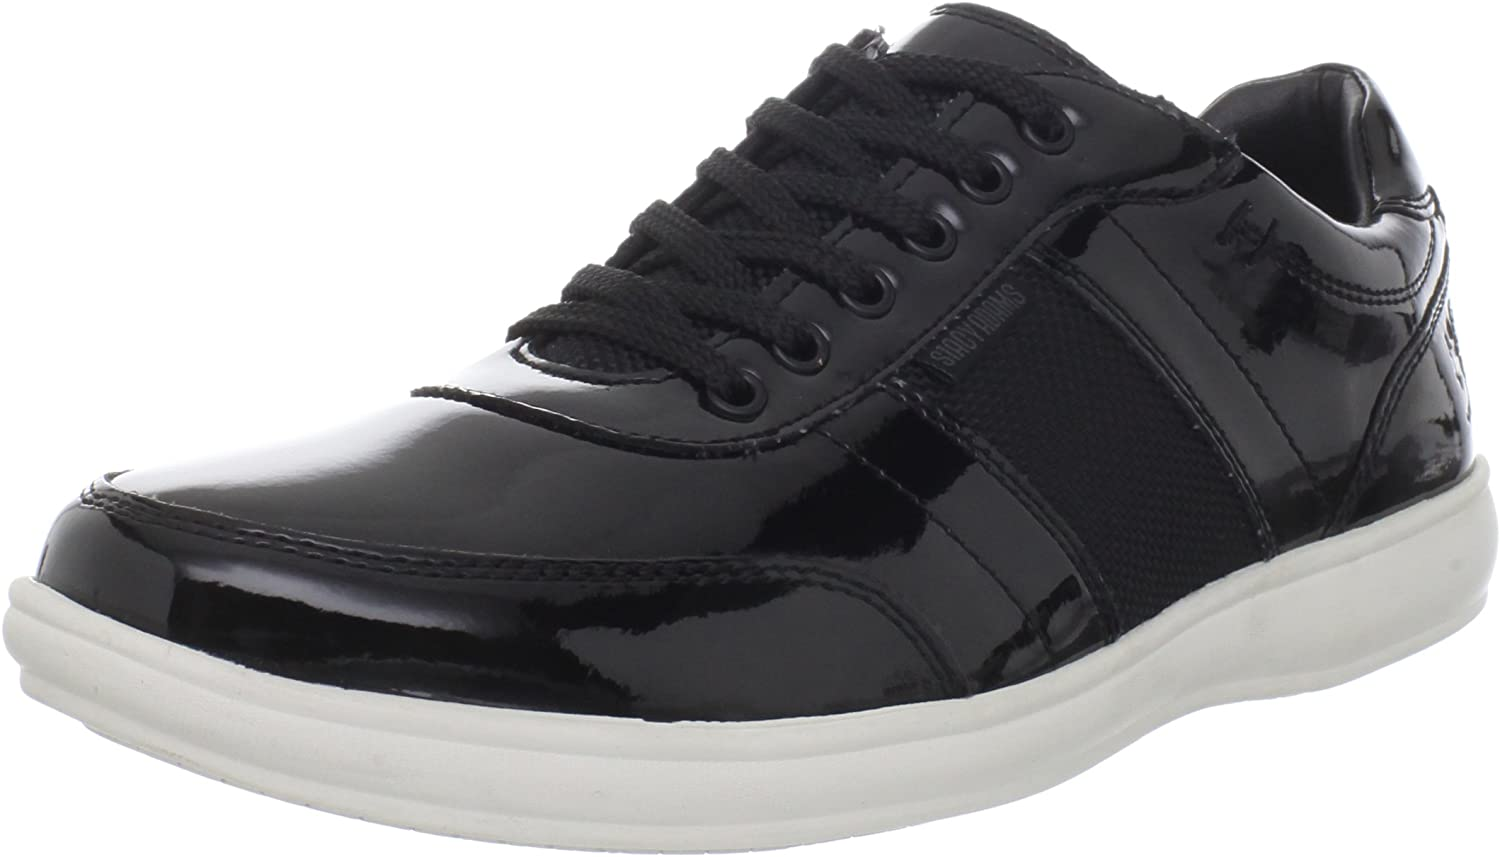 Stacy Adams Deluxe Men's Time sale Adonis Oxford